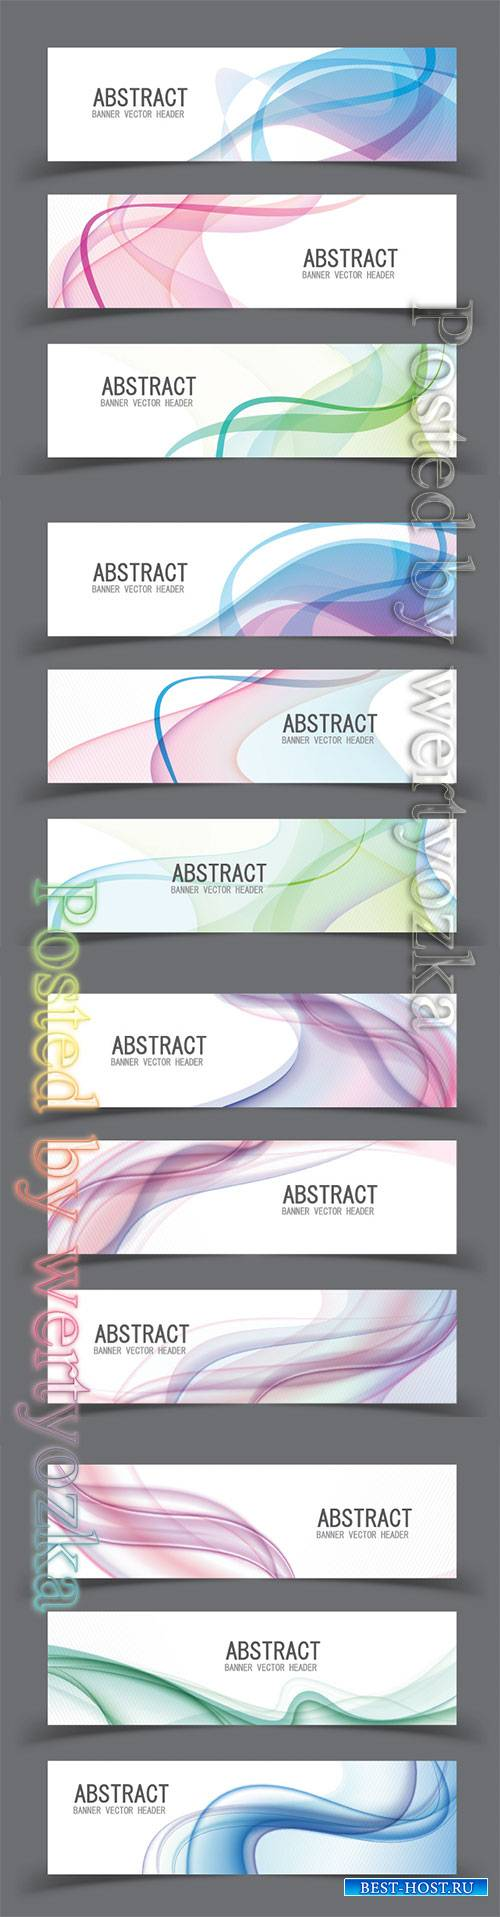 Vector abstract design banner template